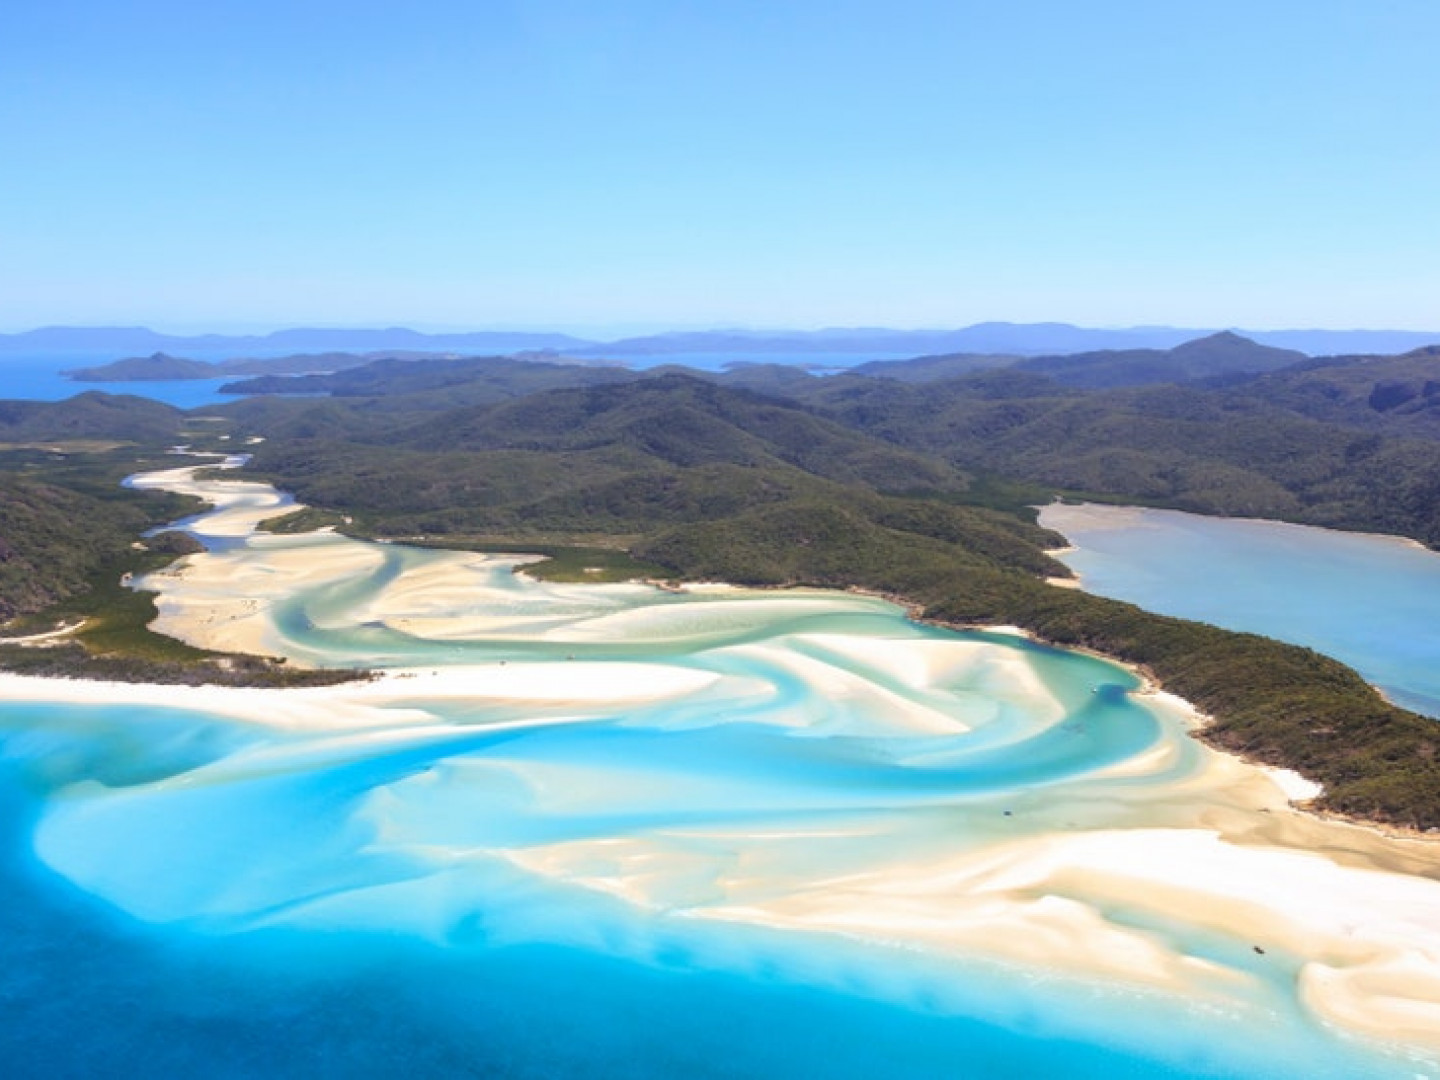 The Great Barrier Reef and Whitehaven Beach, Australia